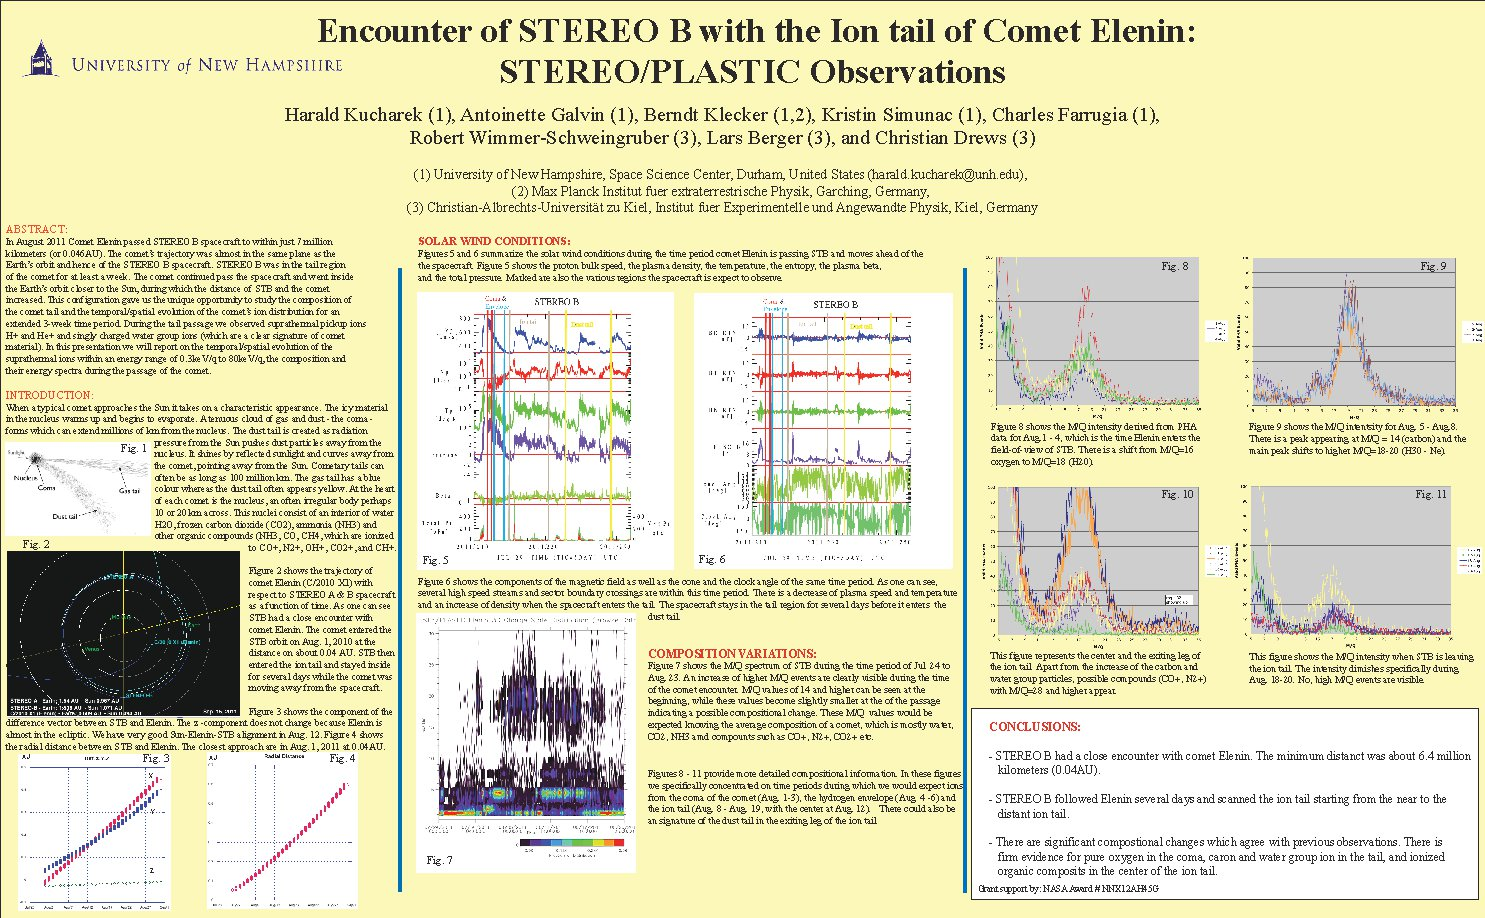 Encounter Of Stereo B With The Ion Tail Of Comet Elenin: Stereo/Plastic Observations by kucharek